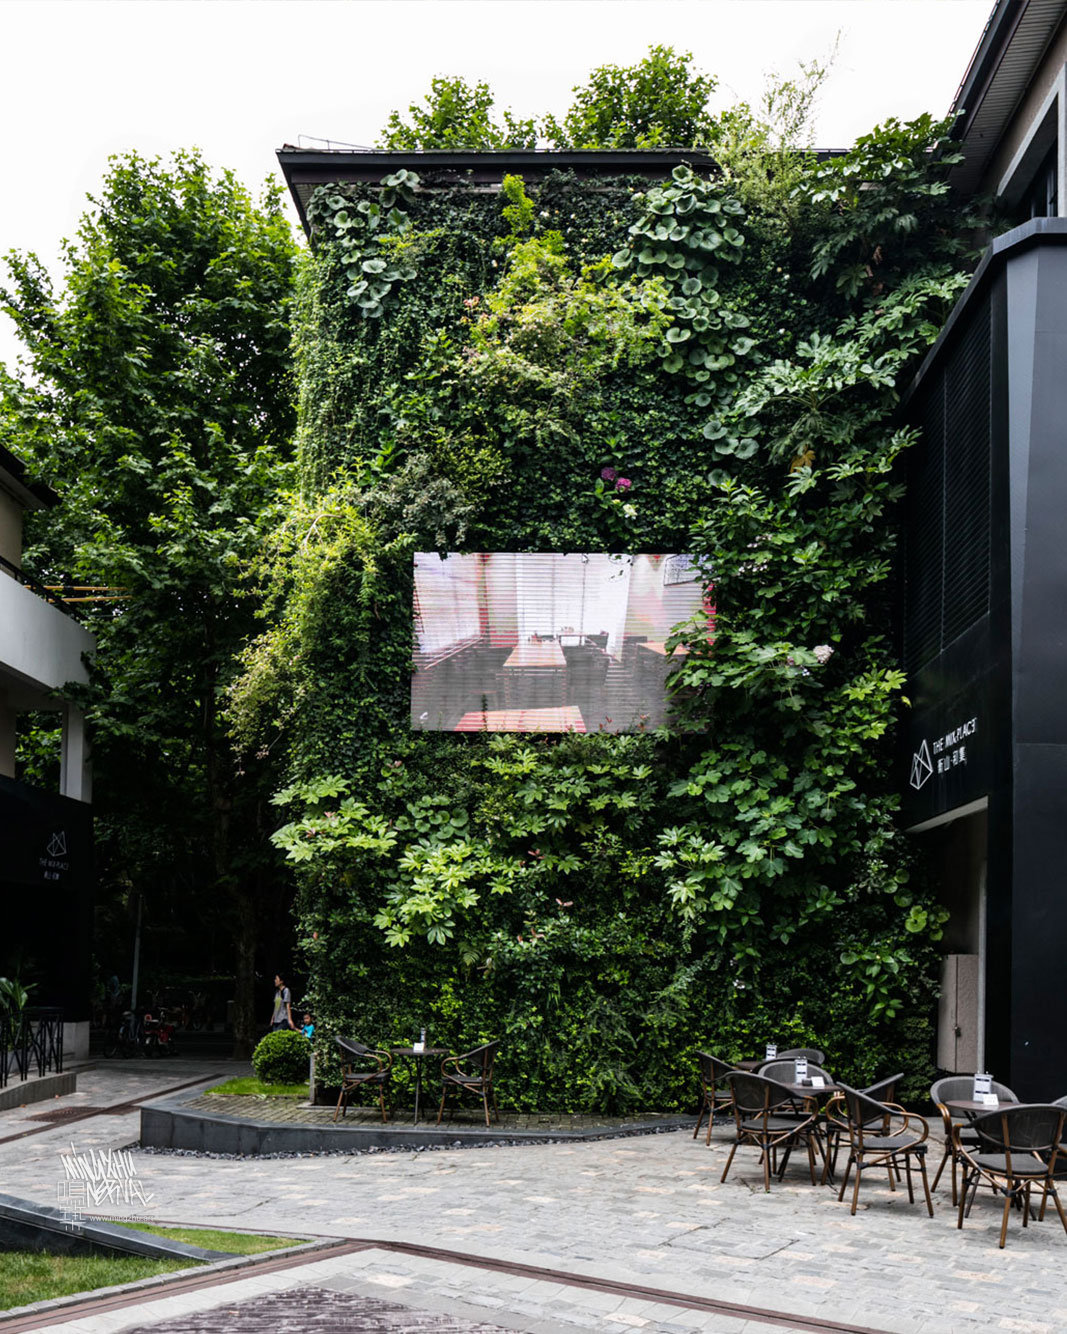 Mingzhu Nerval vertical living wall experts created a sustainable city architecture for the Mixed Place in Shanghai, 2016